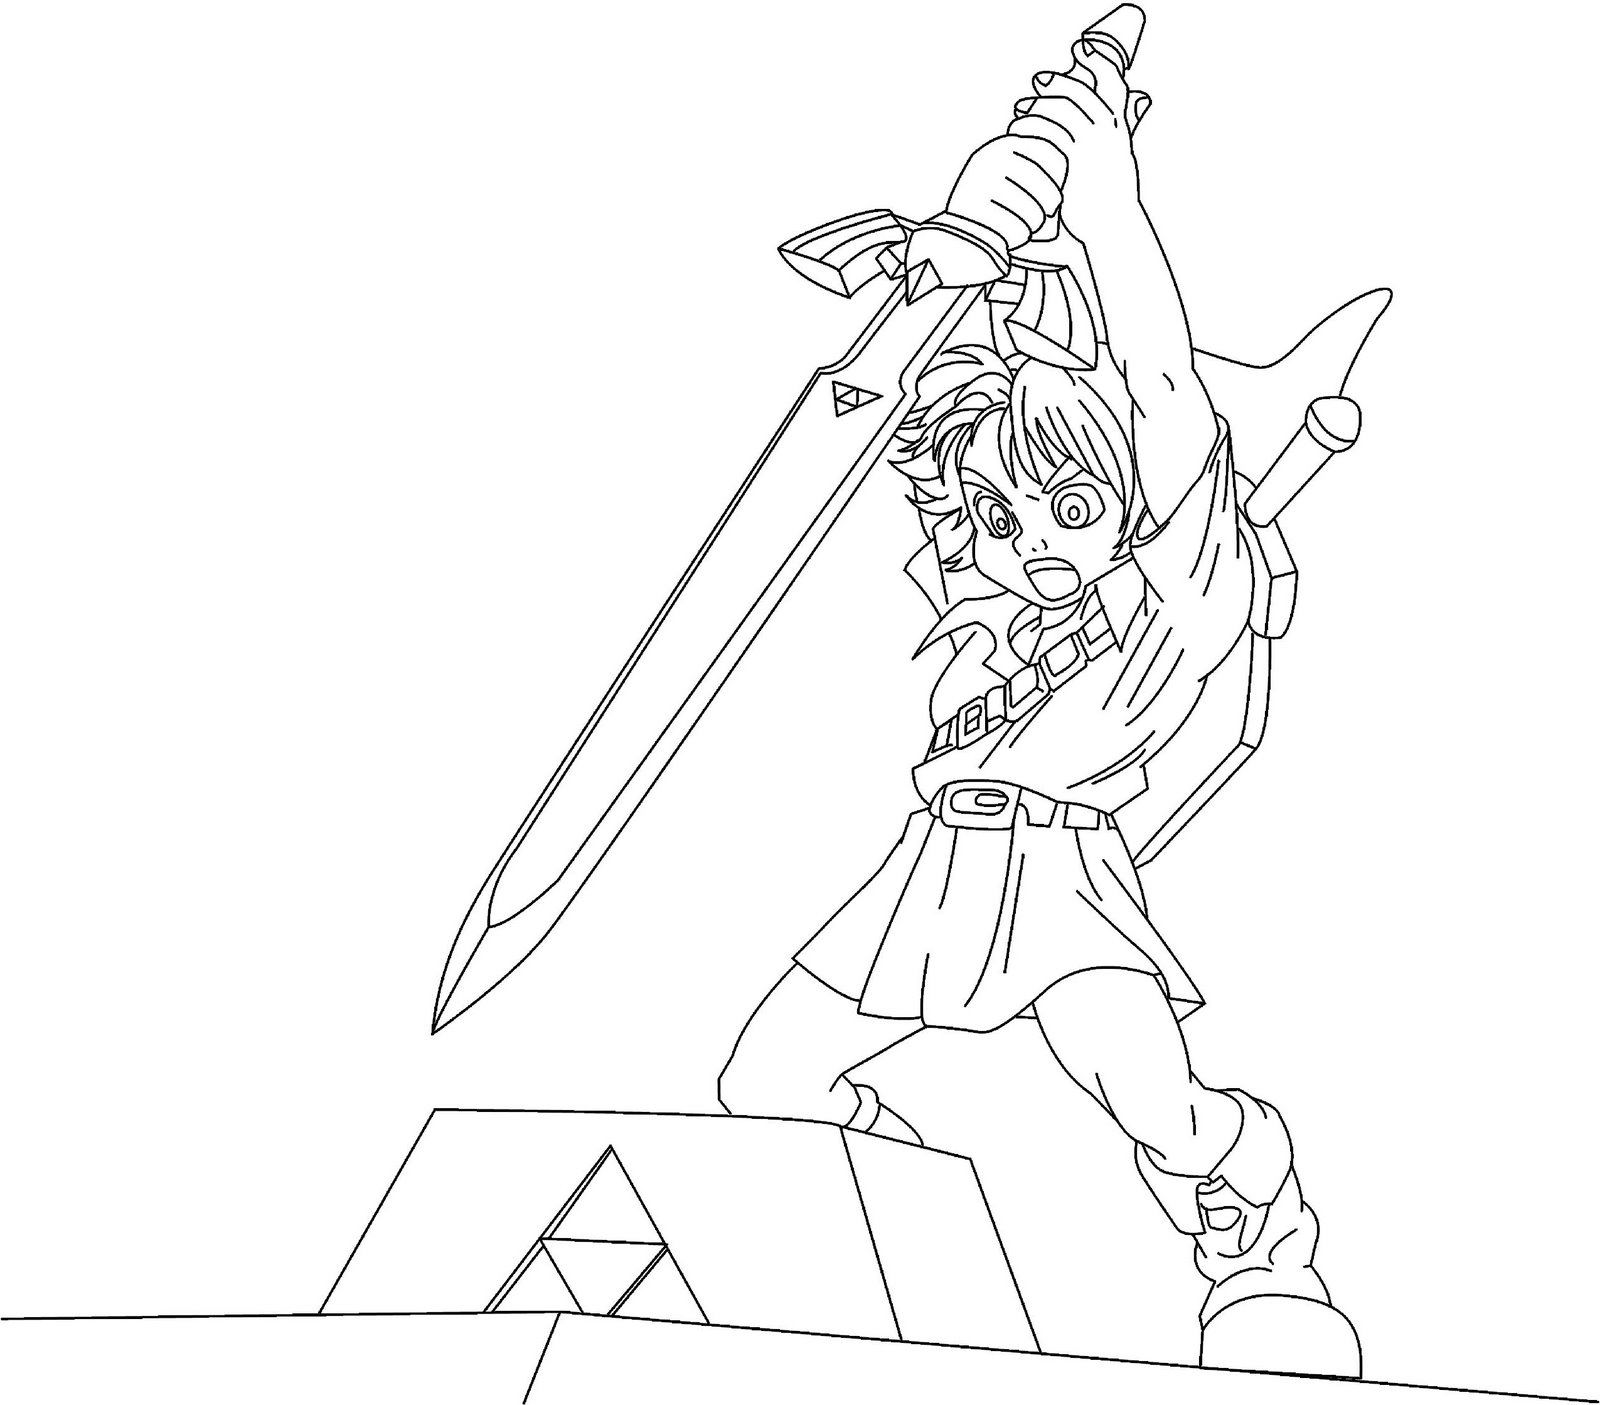 coloring pages zelda - photo#11